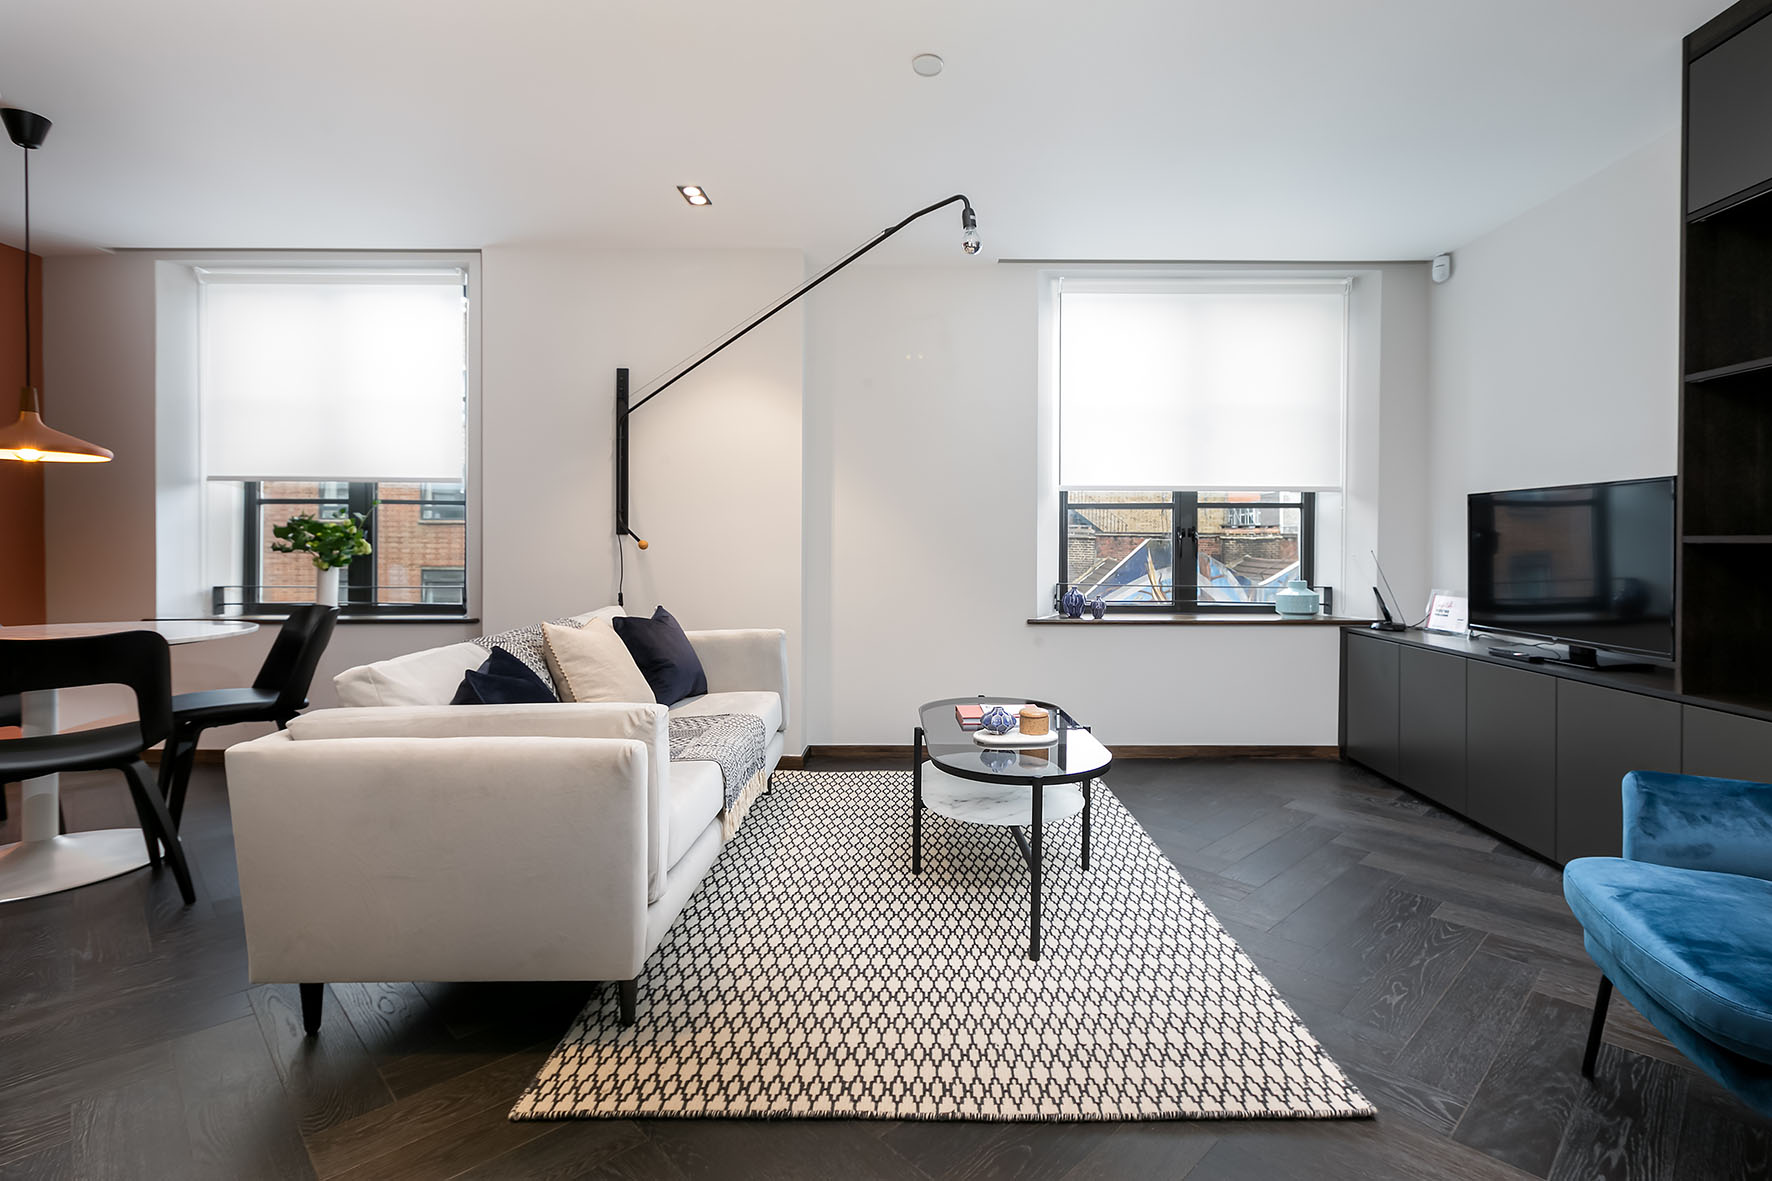 Lovelydays luxury service apartment rental - London - Soho - Noel Street VII - Lovelysuite - 1 bedrooms - 1 bathrooms - Luxury living room - b26c7511c405 - Lovelydays